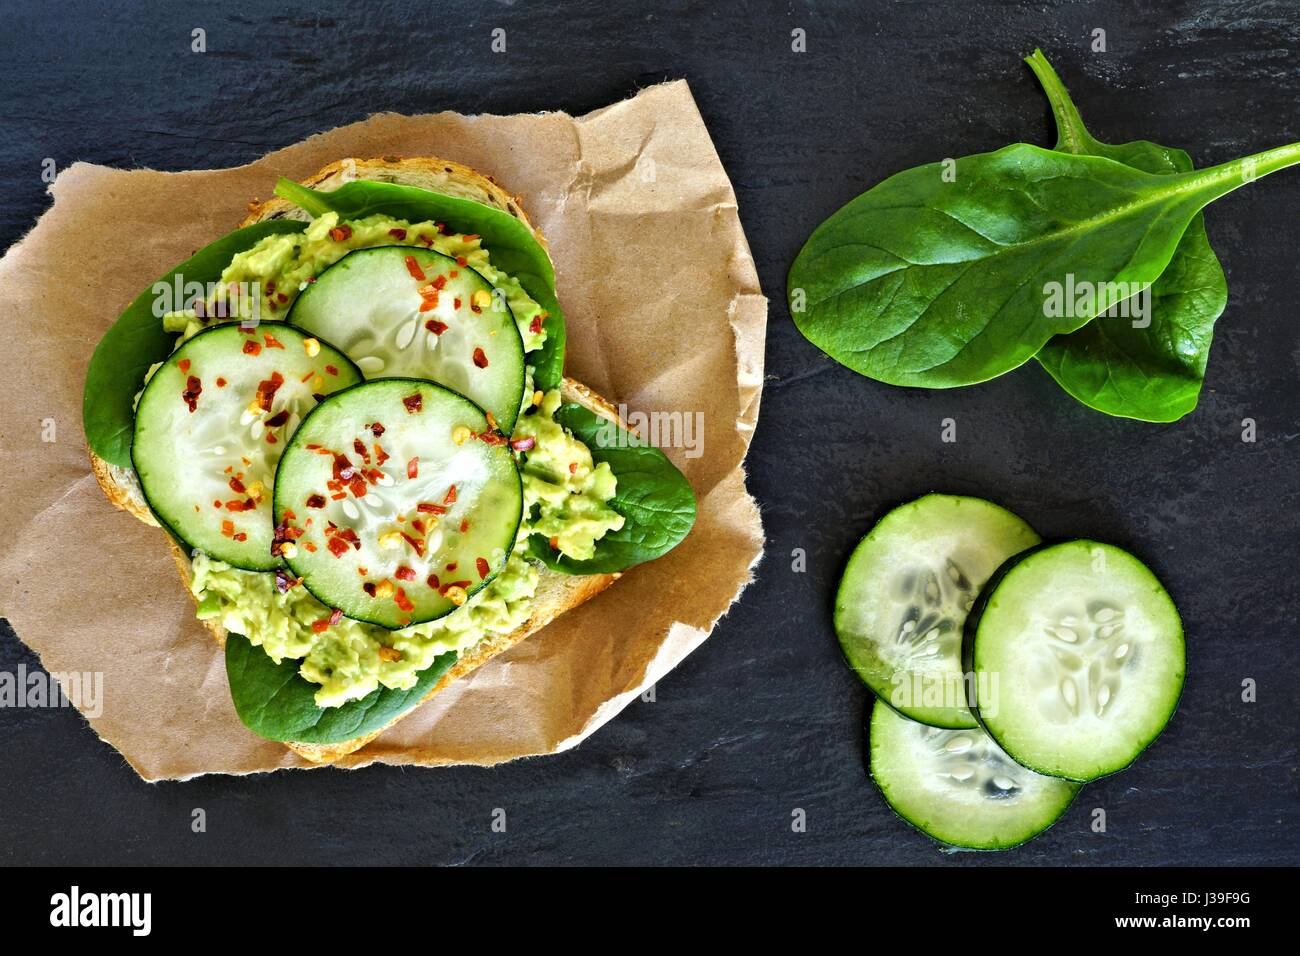 Avocado toast with cucumber, spinach and whole grain bread on paper against a dark slate background - Stock Image